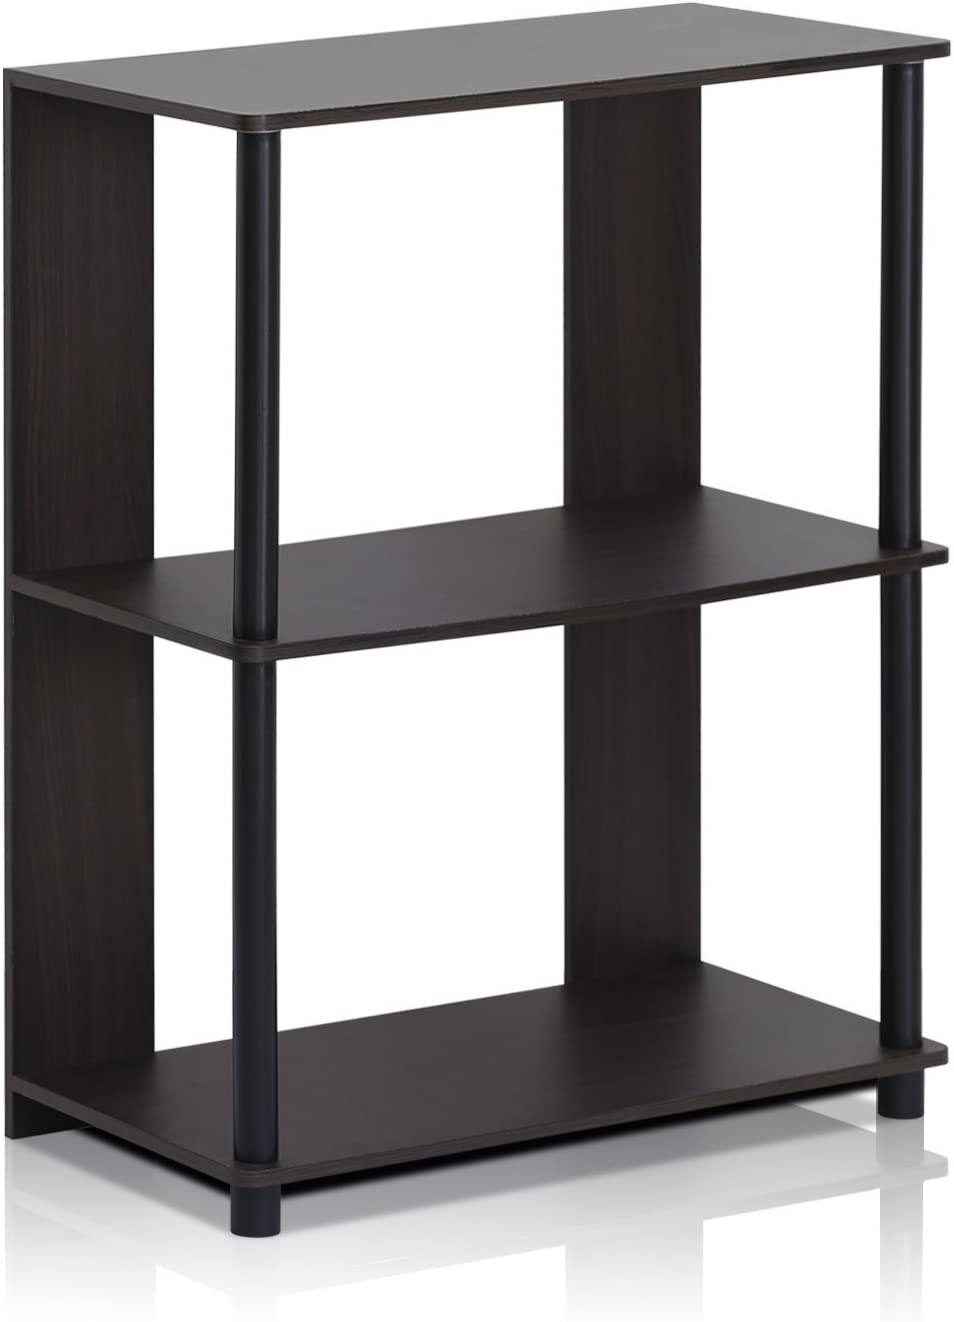 FURINNO Jaya Simple Design Bookcase, Walnut